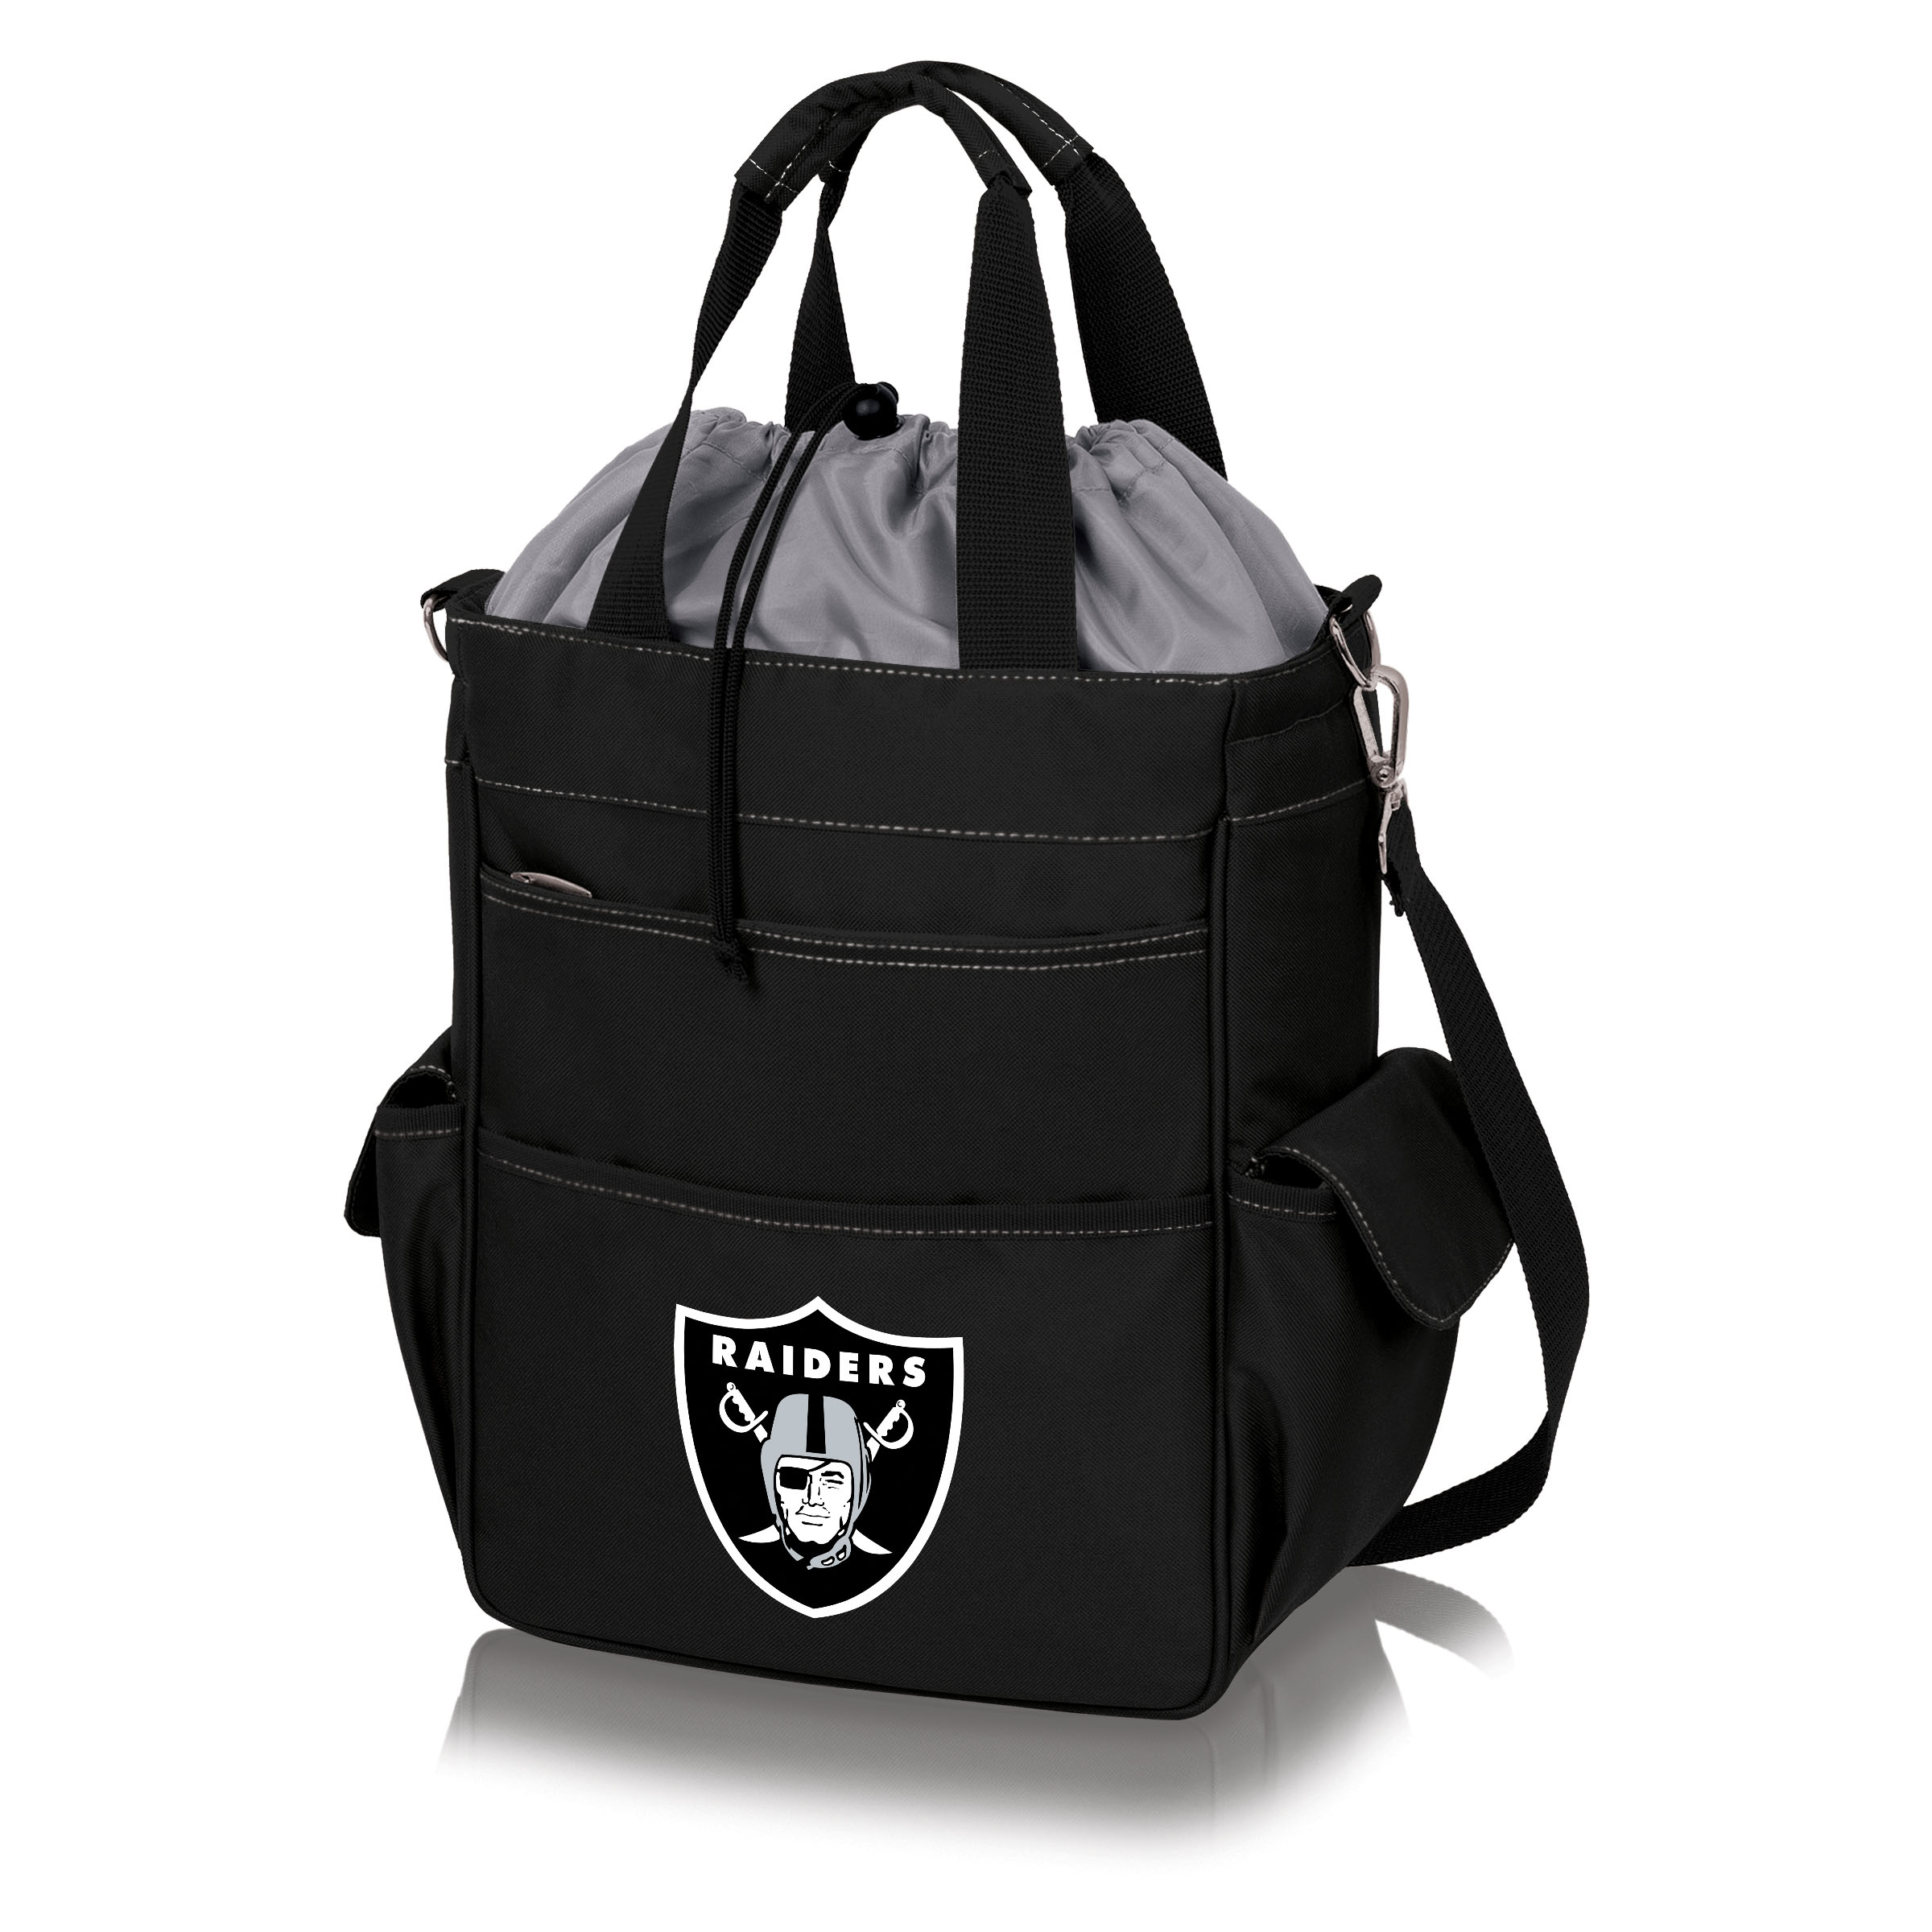 Oakland Raiders Activo Cooler Tote - Black - No Size